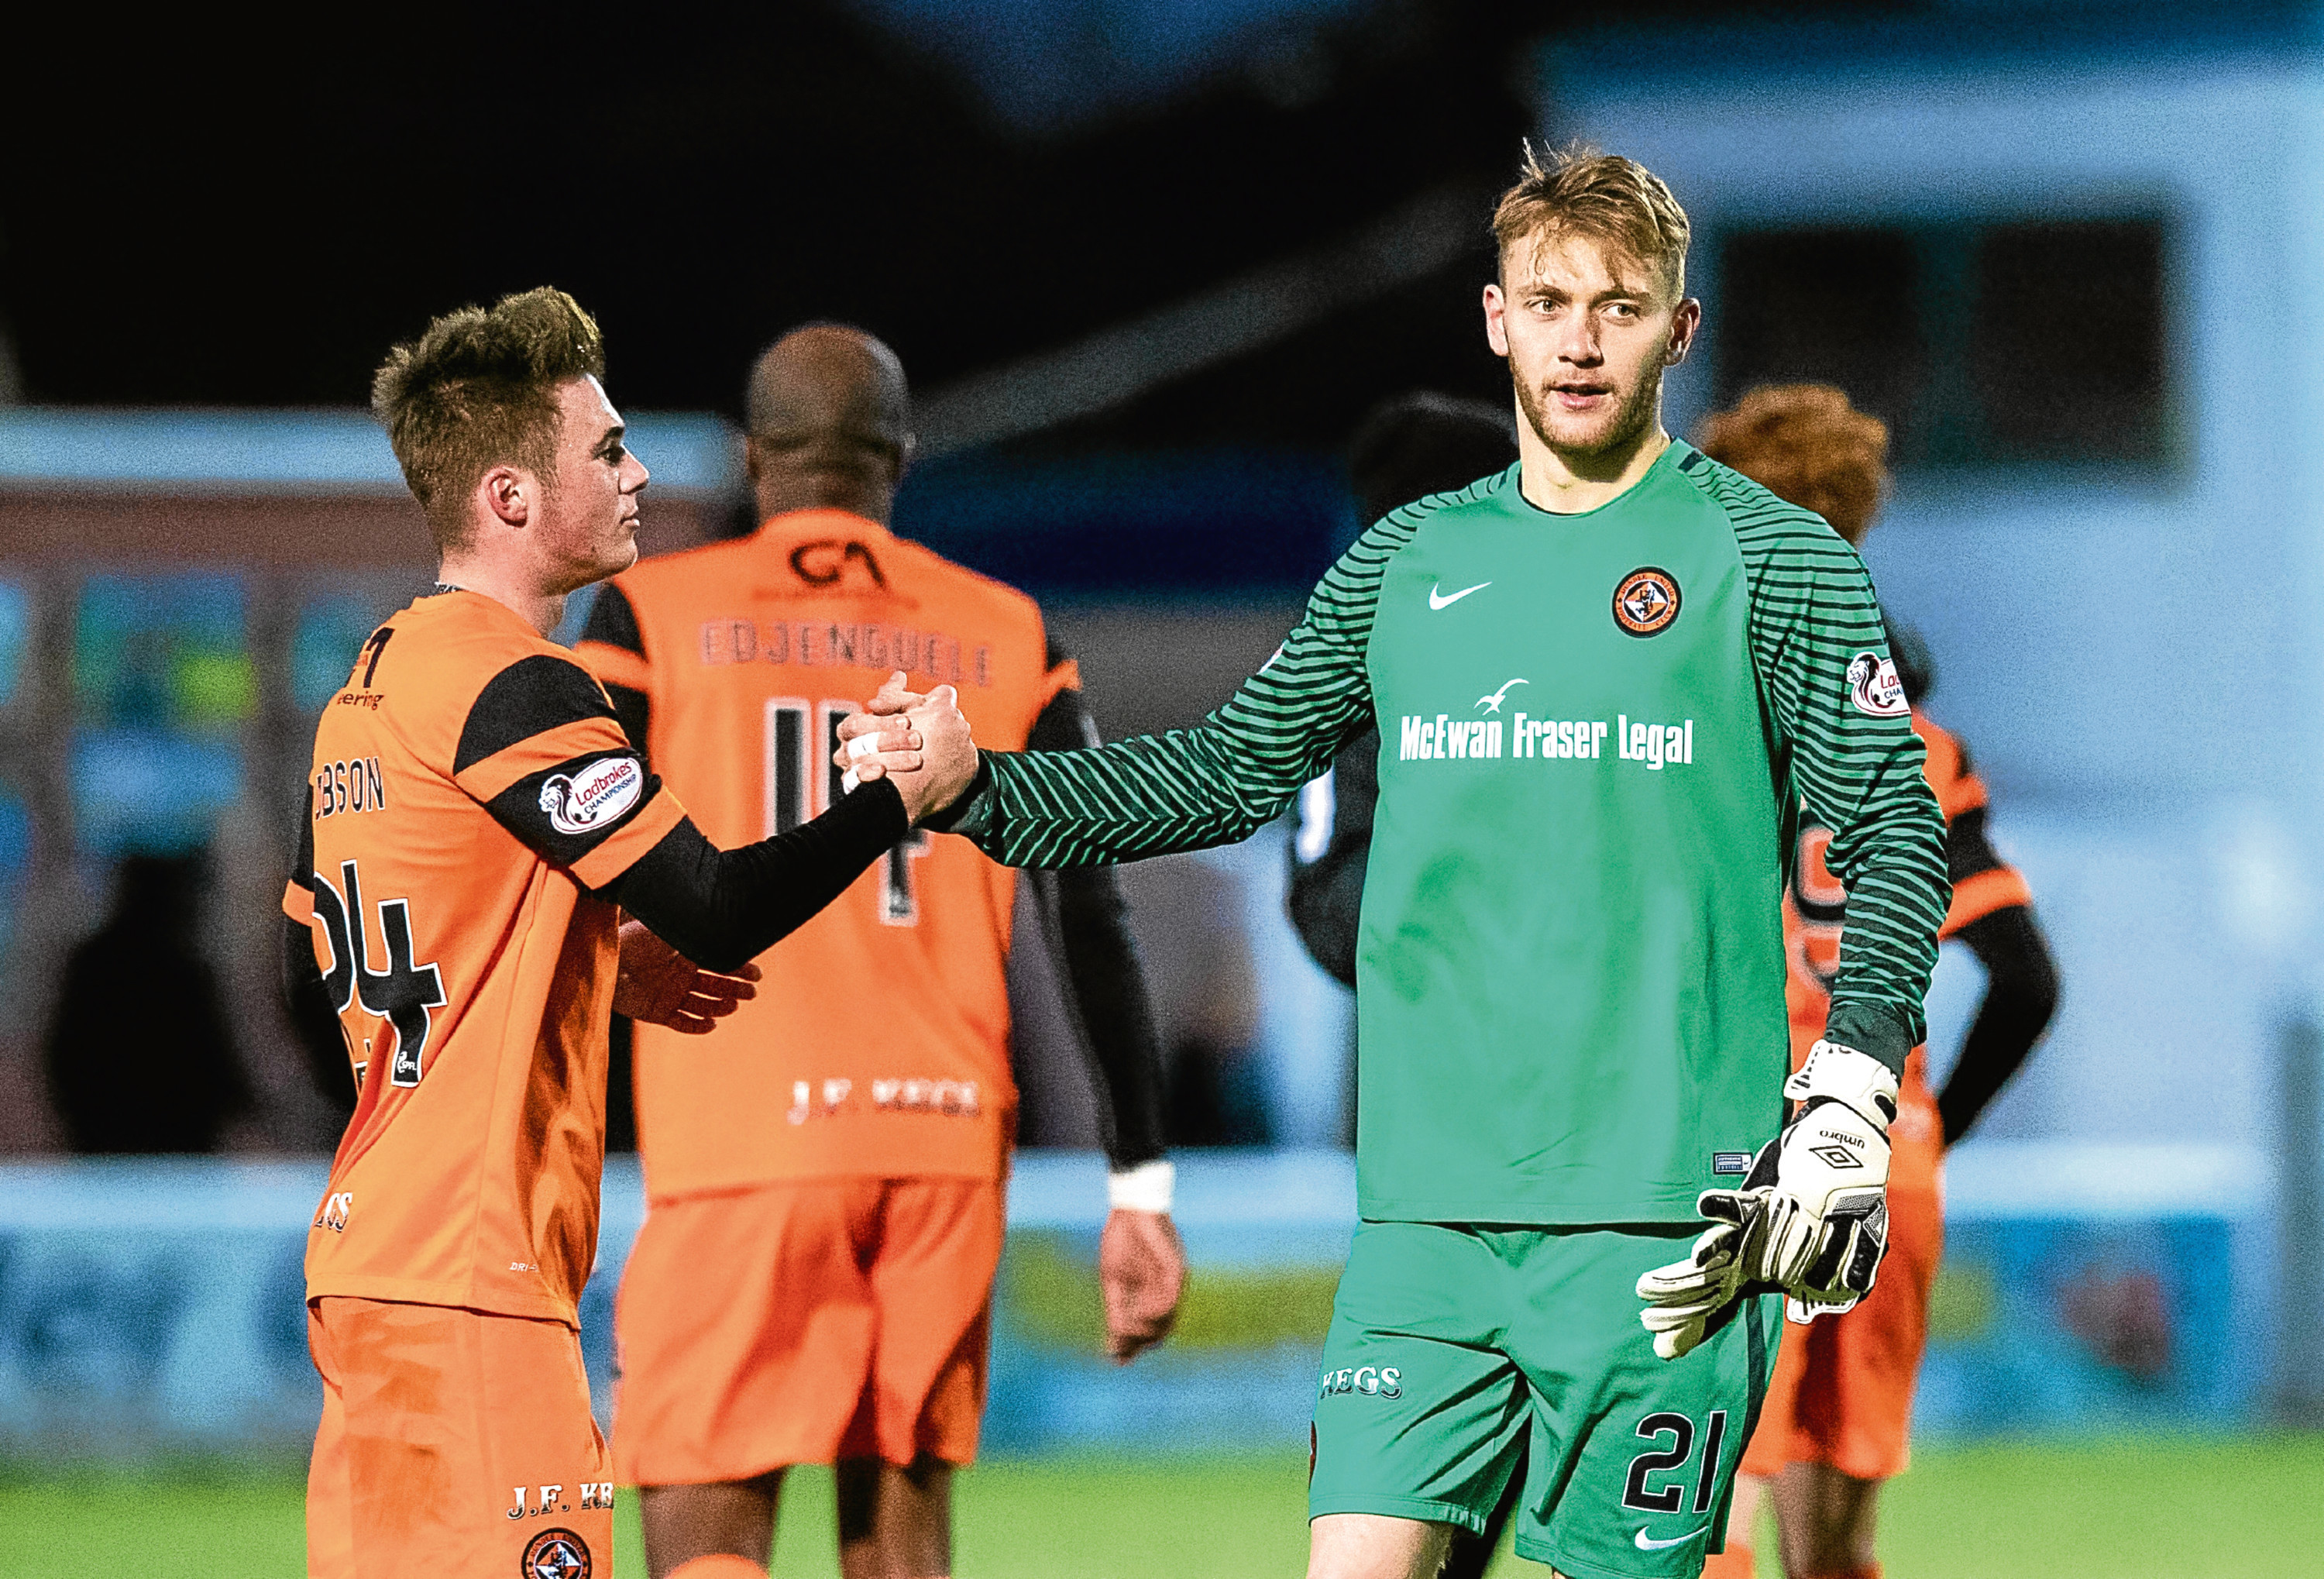 05/11/16 LADBROKES CHAMPIONSHIP   QOTS v DUNDEE UNITED (1-4)   PALMERSTON PARK - DUMFRIES   Dundee United's Jamie Robson and Luis Zwick at full time